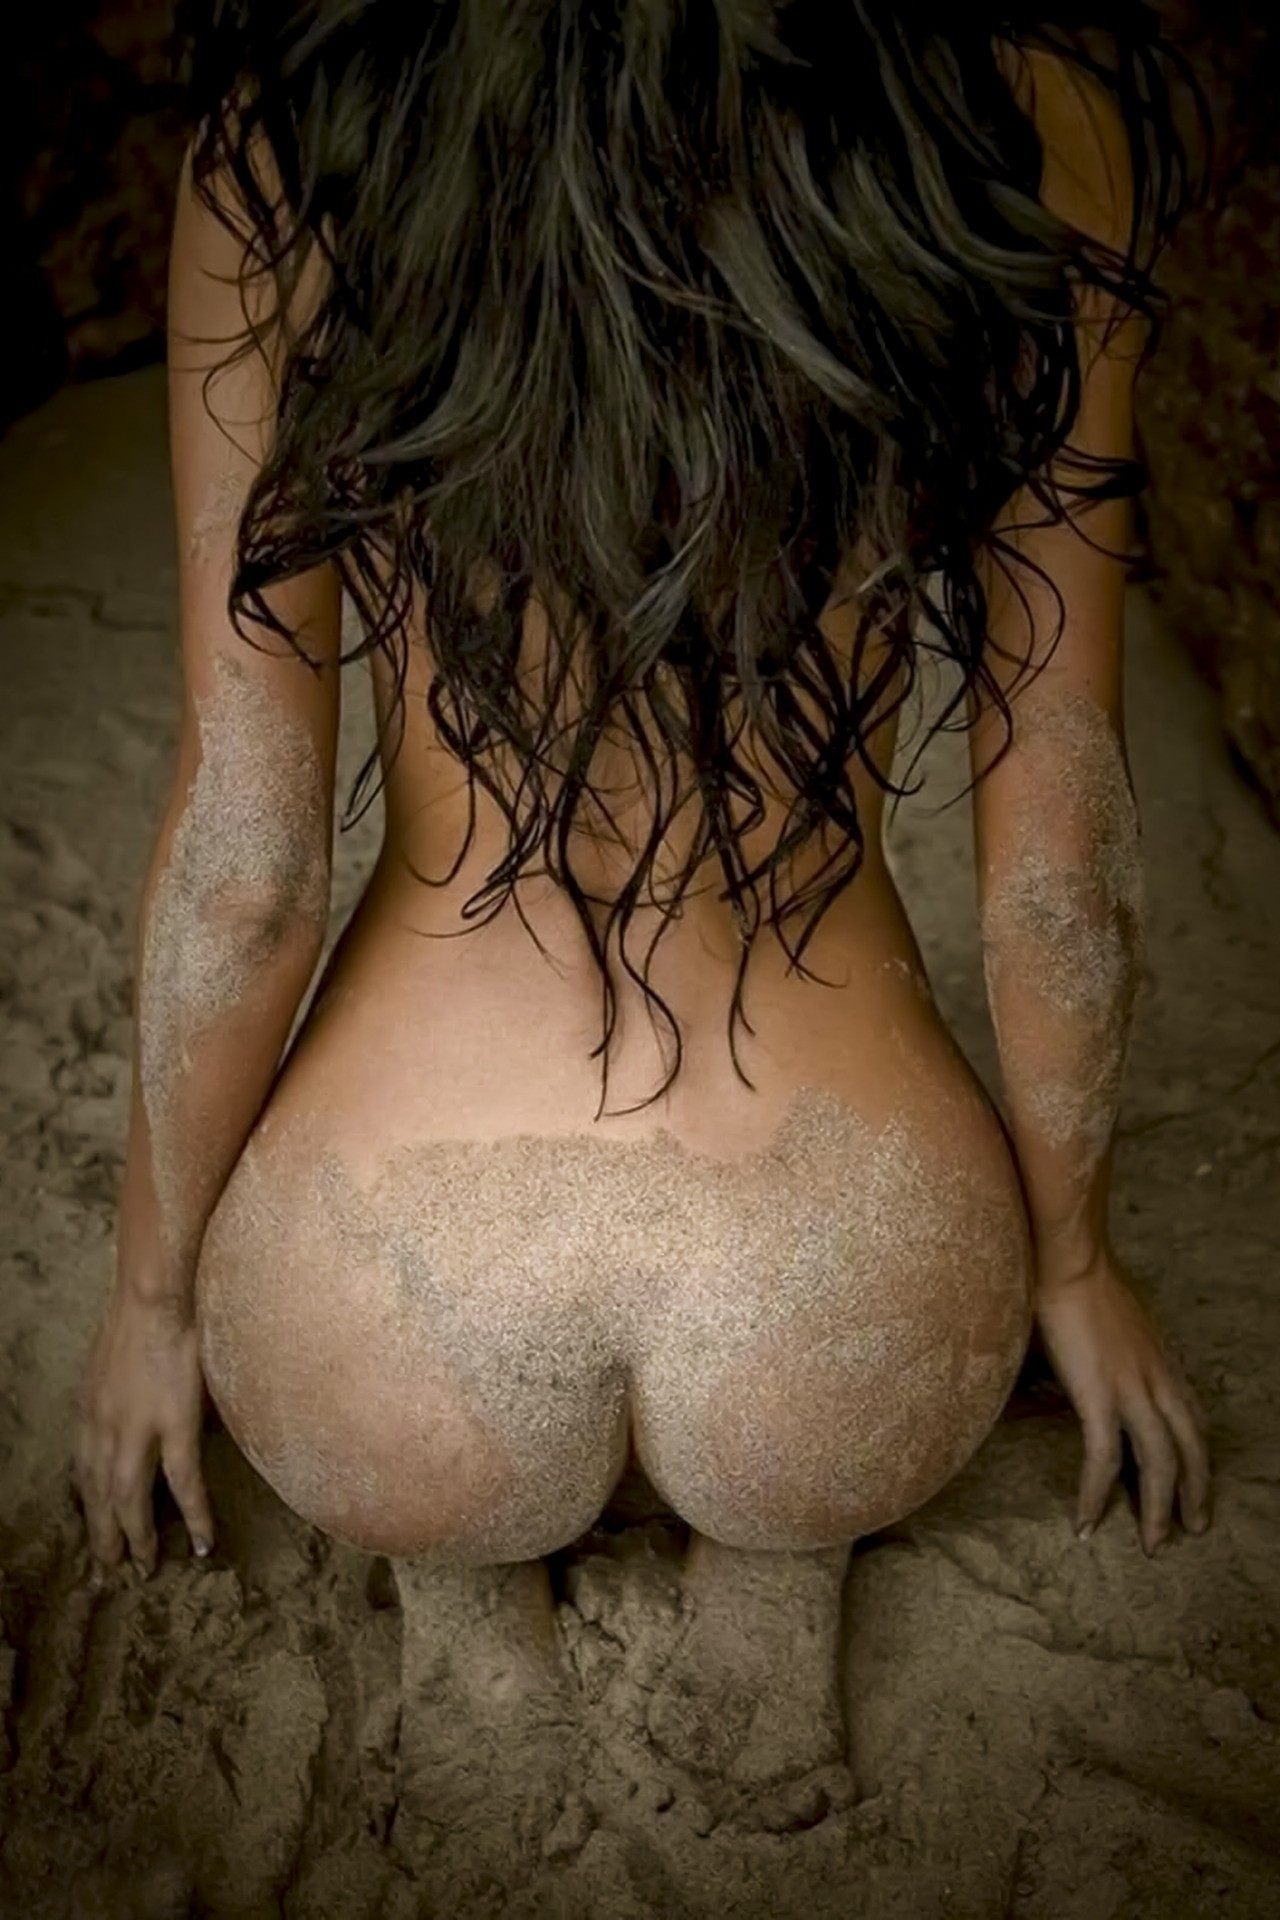 76 wallpapers of naked girl that you will never see ...